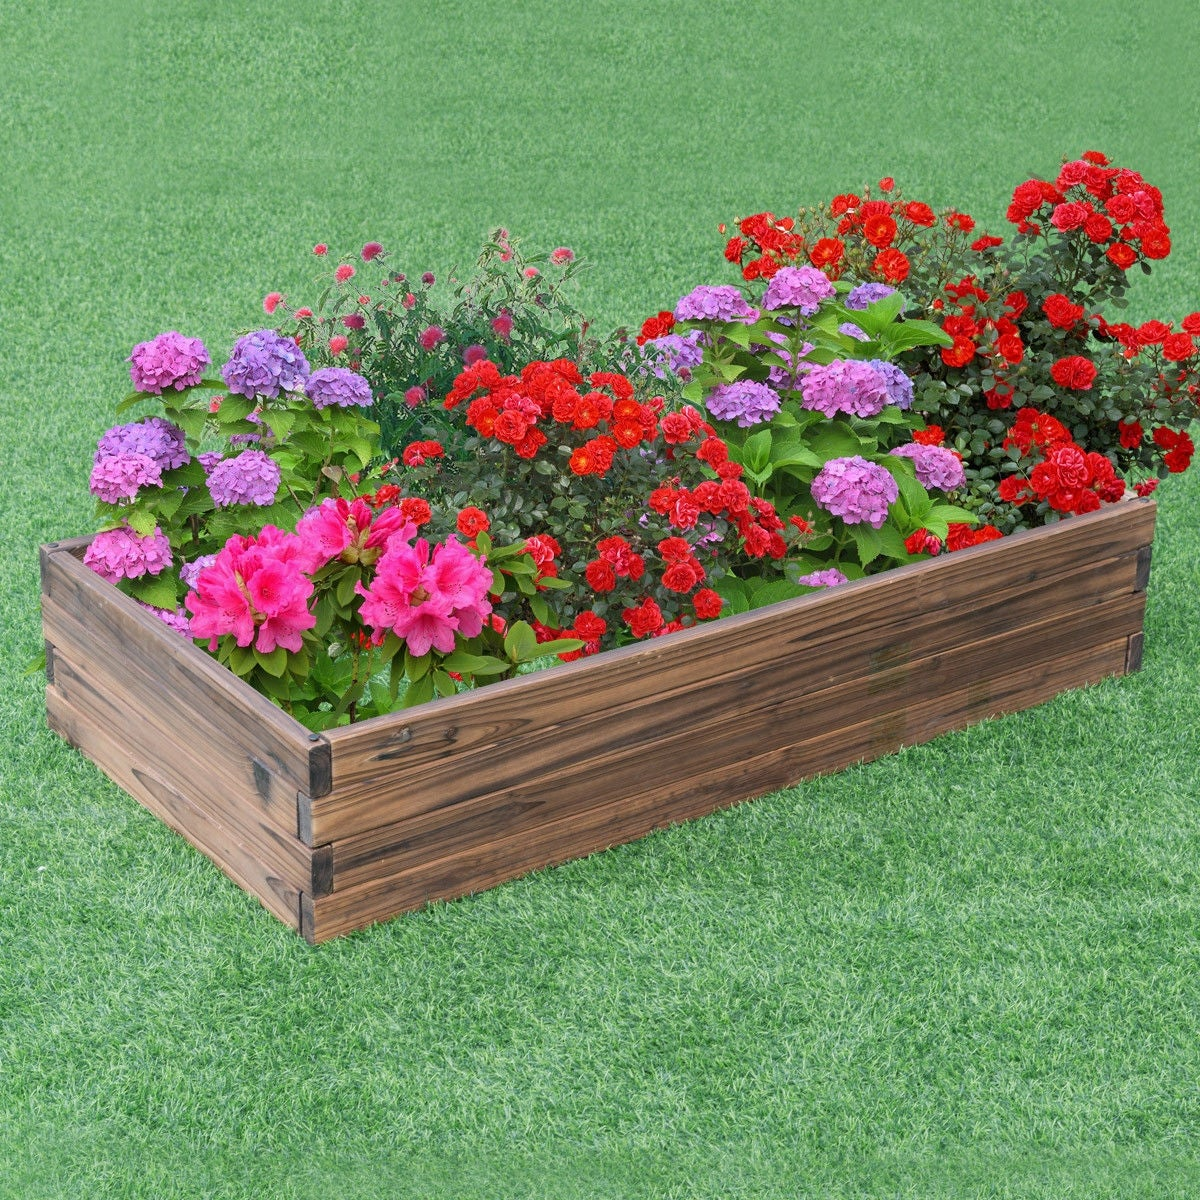 Shop Gymax Wooden Raised Garden Bed Kit Elevated Planter Box For